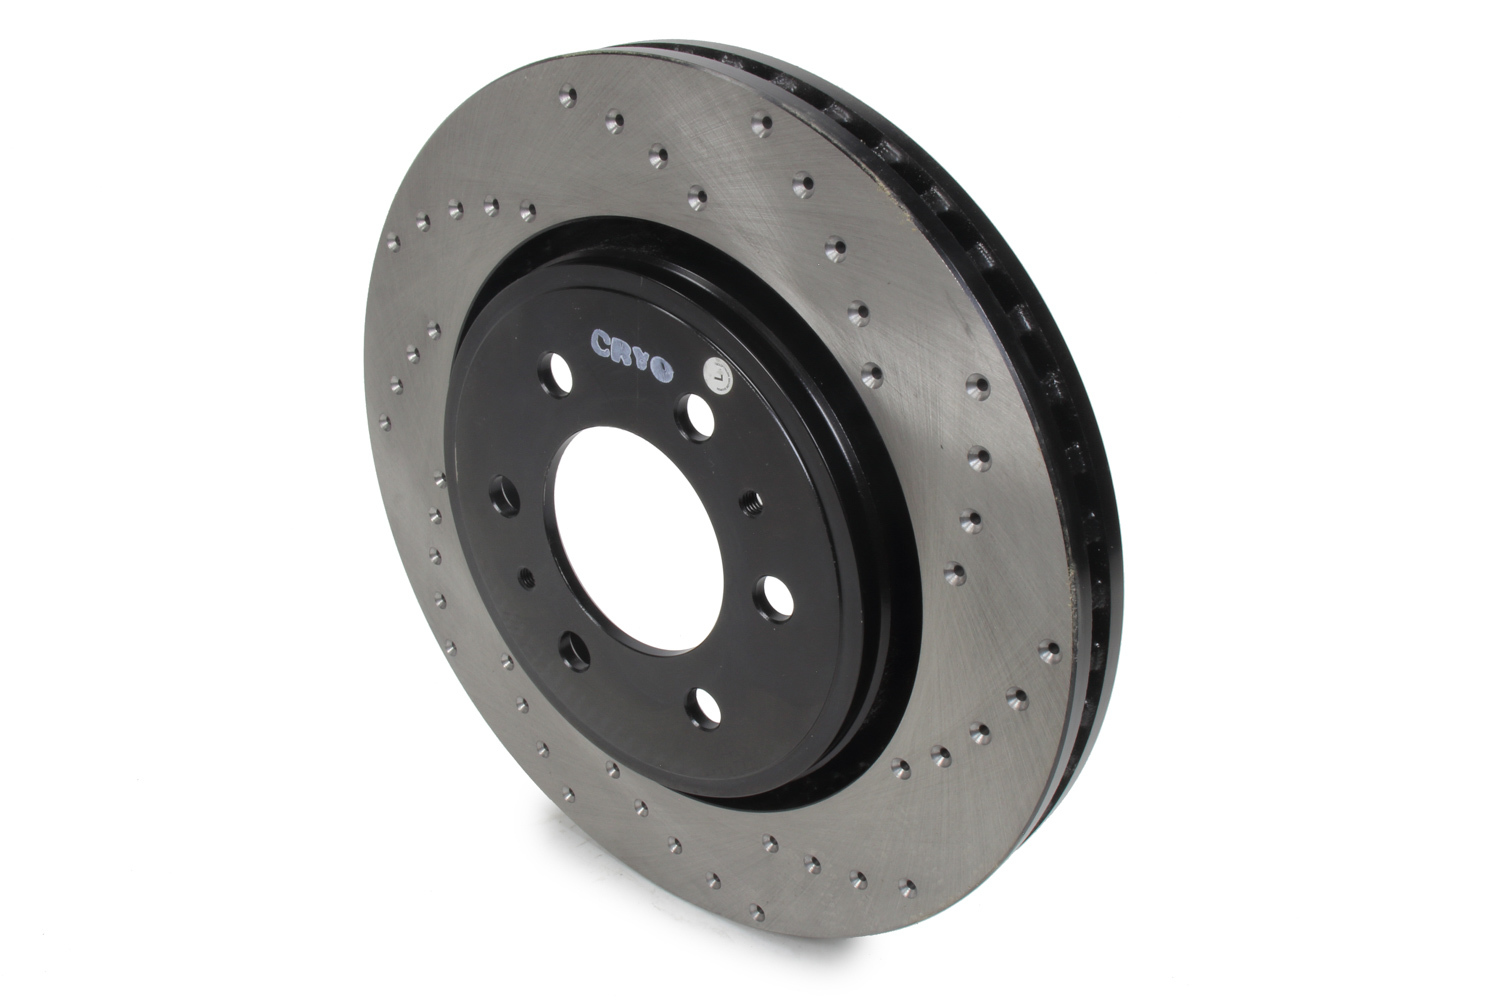 Stoptech 128.65119CL Brake Rotor, Sport Cryo, Front, Driver Side, Drilled / Slotted, 350 mm OD, 34 mm Thickness, 6 x 135 mm Bolt Pattern, Iron, Black Paint, Each